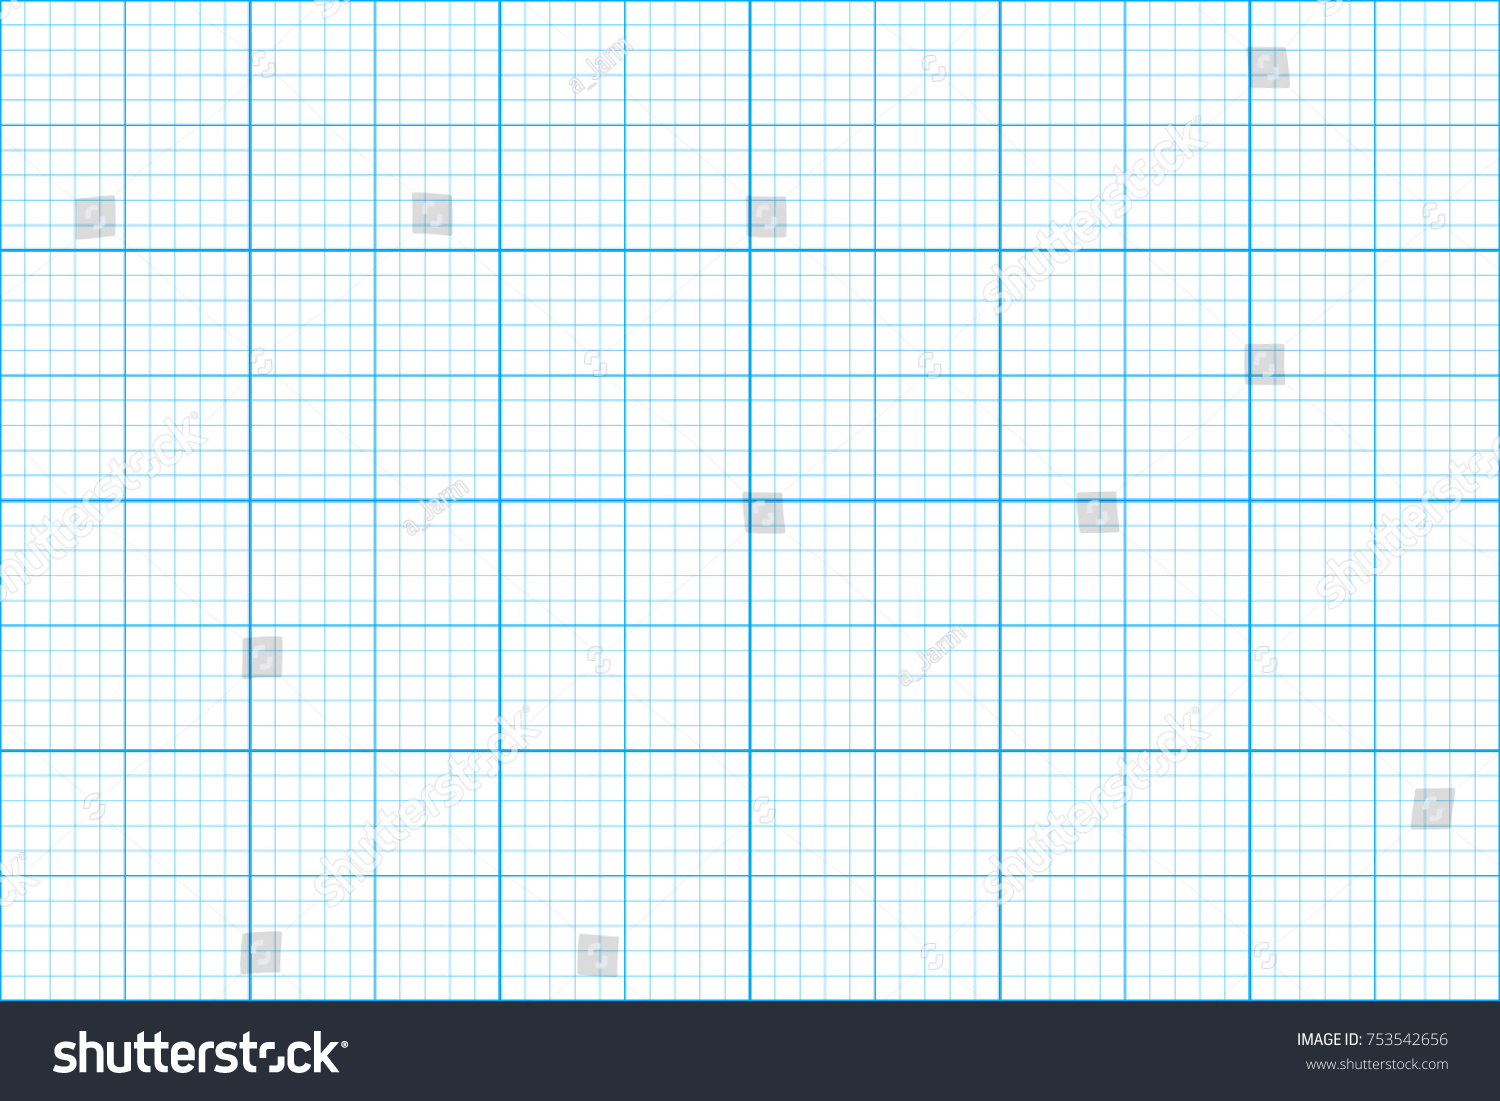 Charming Ms Word Graph Paper Ideas Resume Ideas bayaarinfo